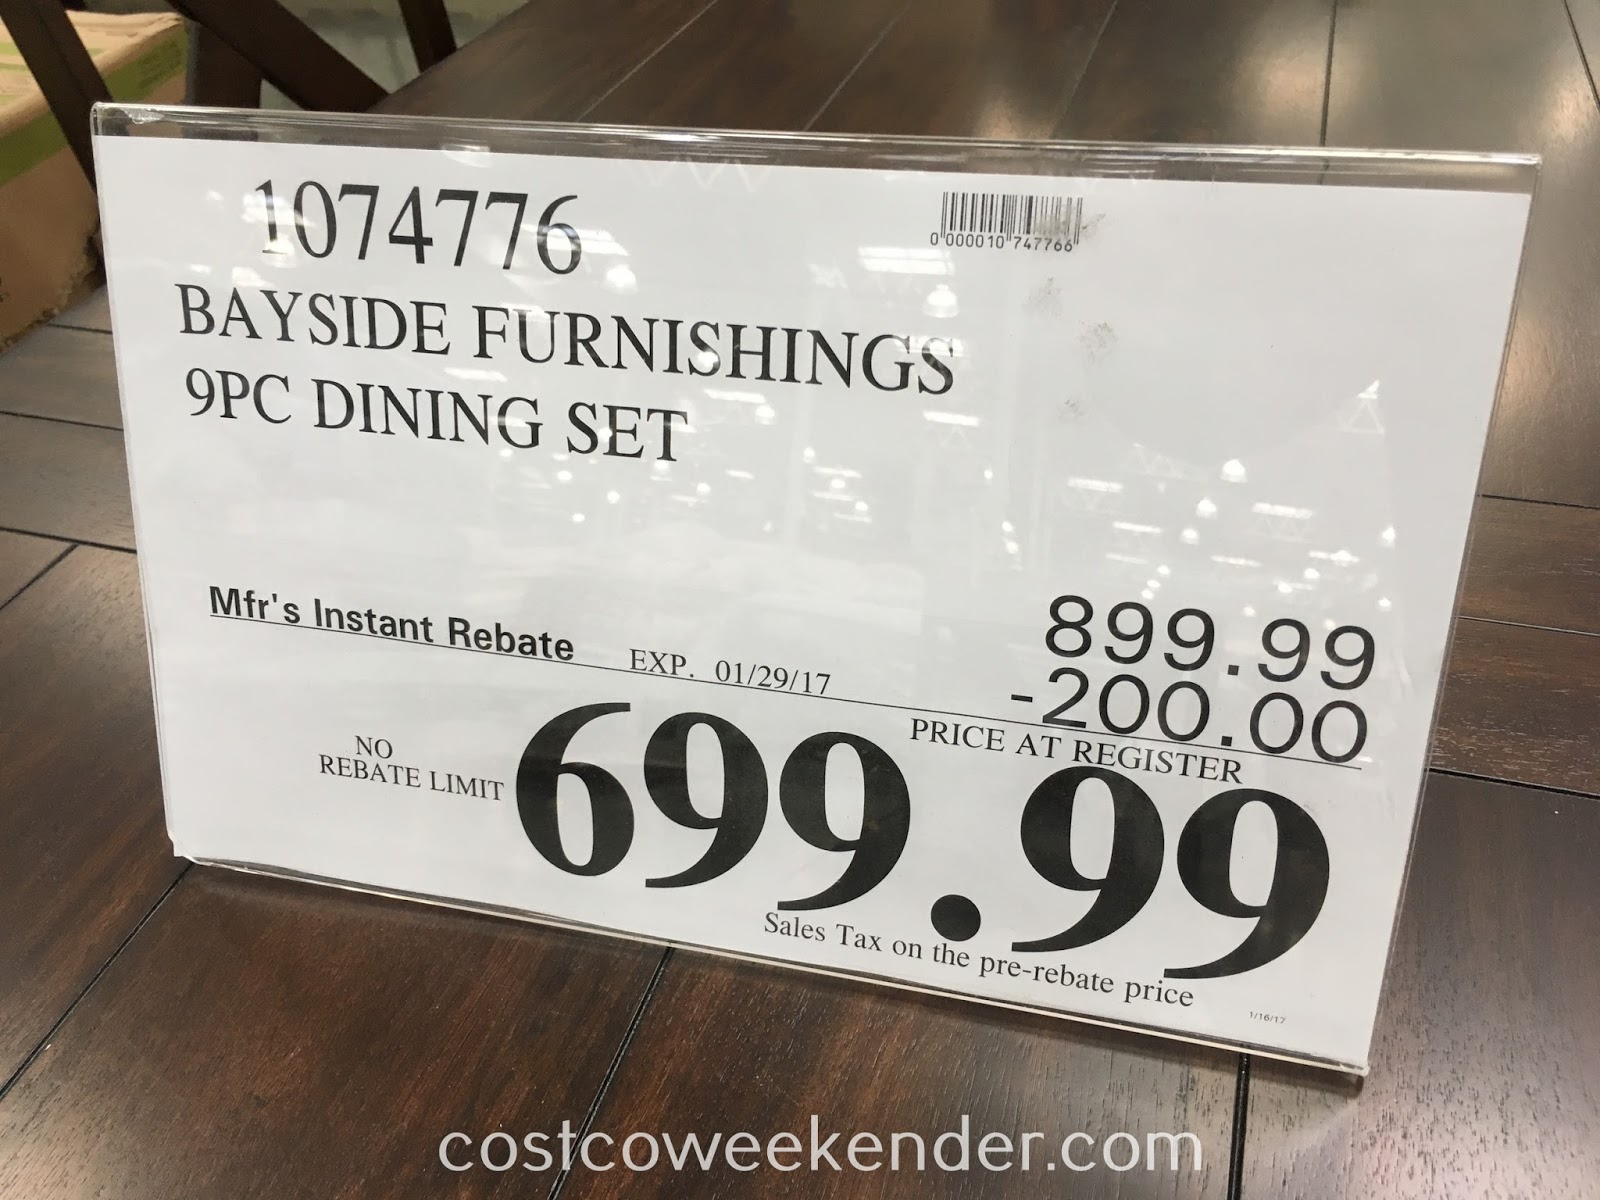 Deal for the Bayside Furnishings 9-piece Dining Set at Costco